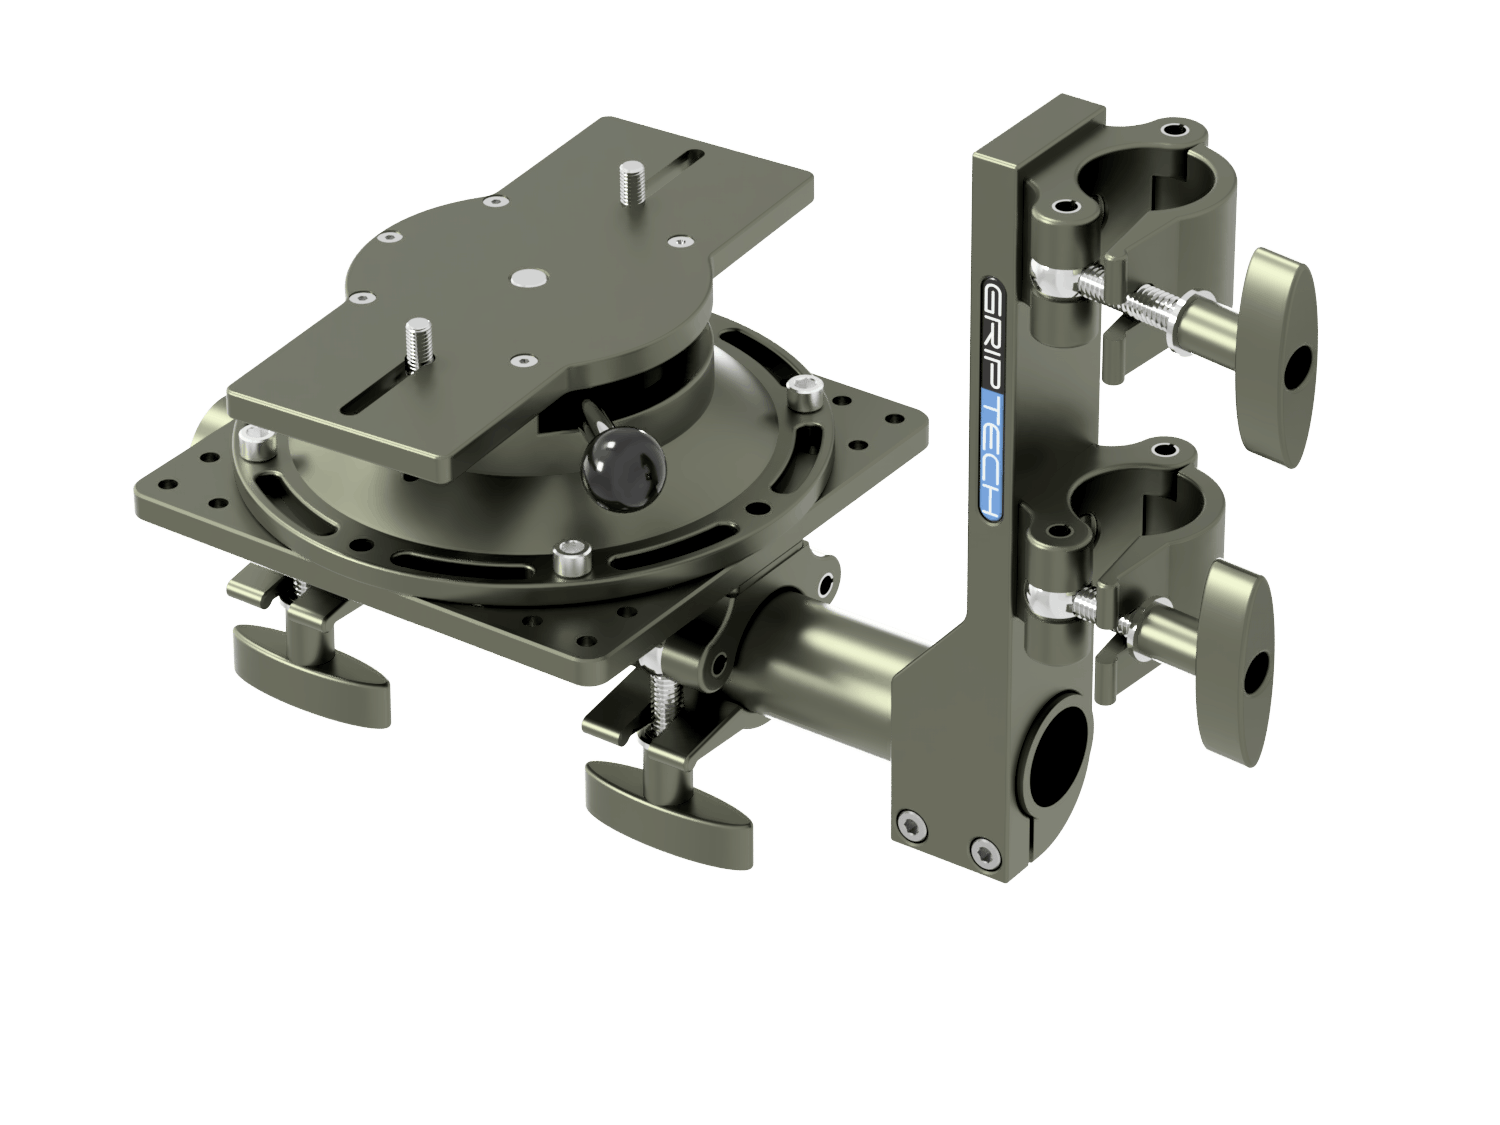 T Bar Bracket+ 1 Scaff Tube (L=600mm) + 1 Small Mounting Plate  + 2 Scaff Half Clamps + 1 Leveling Head